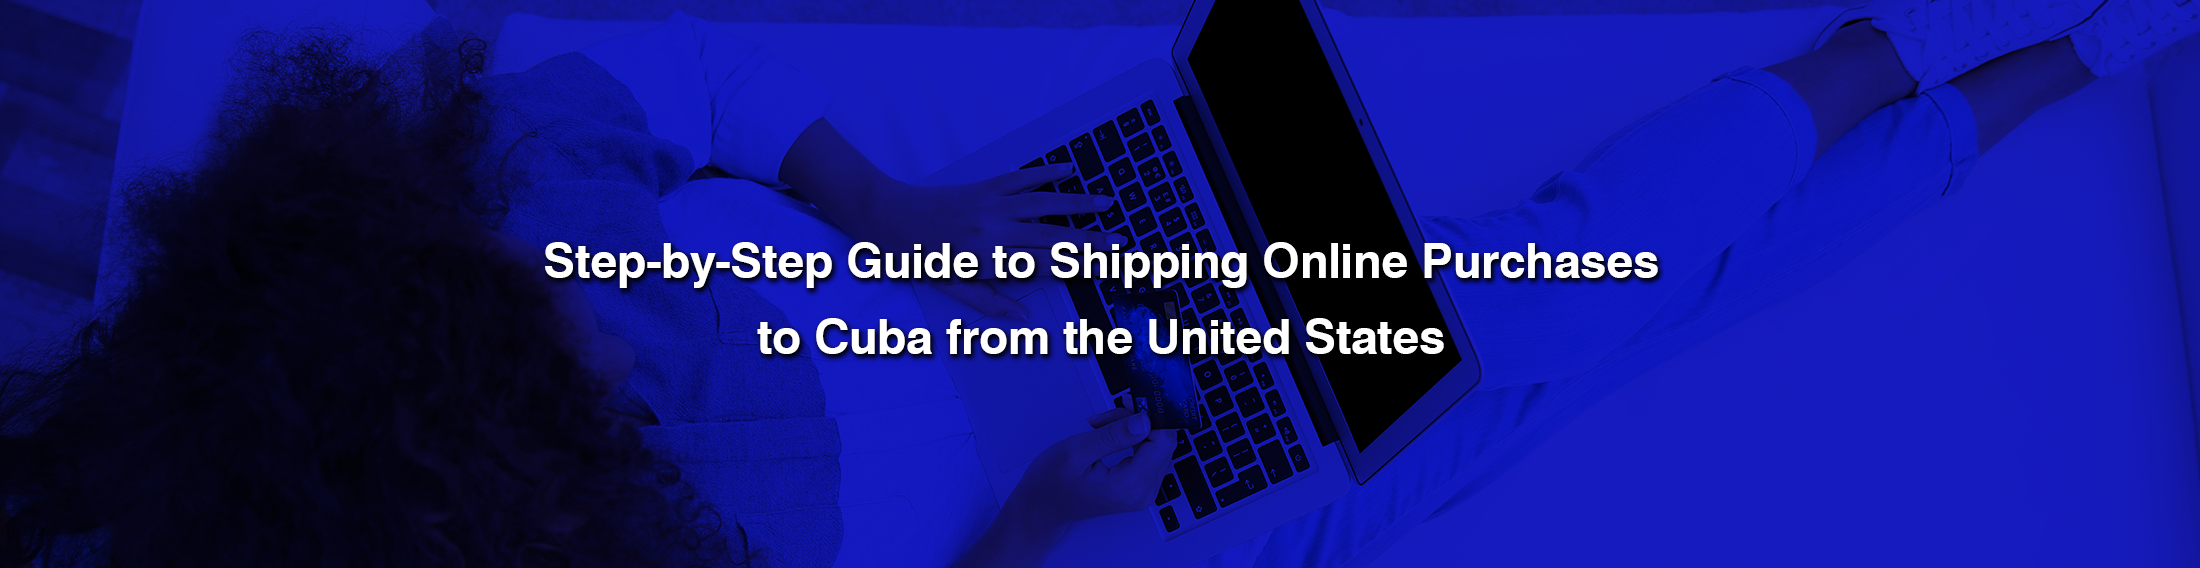 Step by Step Guide to Shipping Online Purchases to Cuba from US